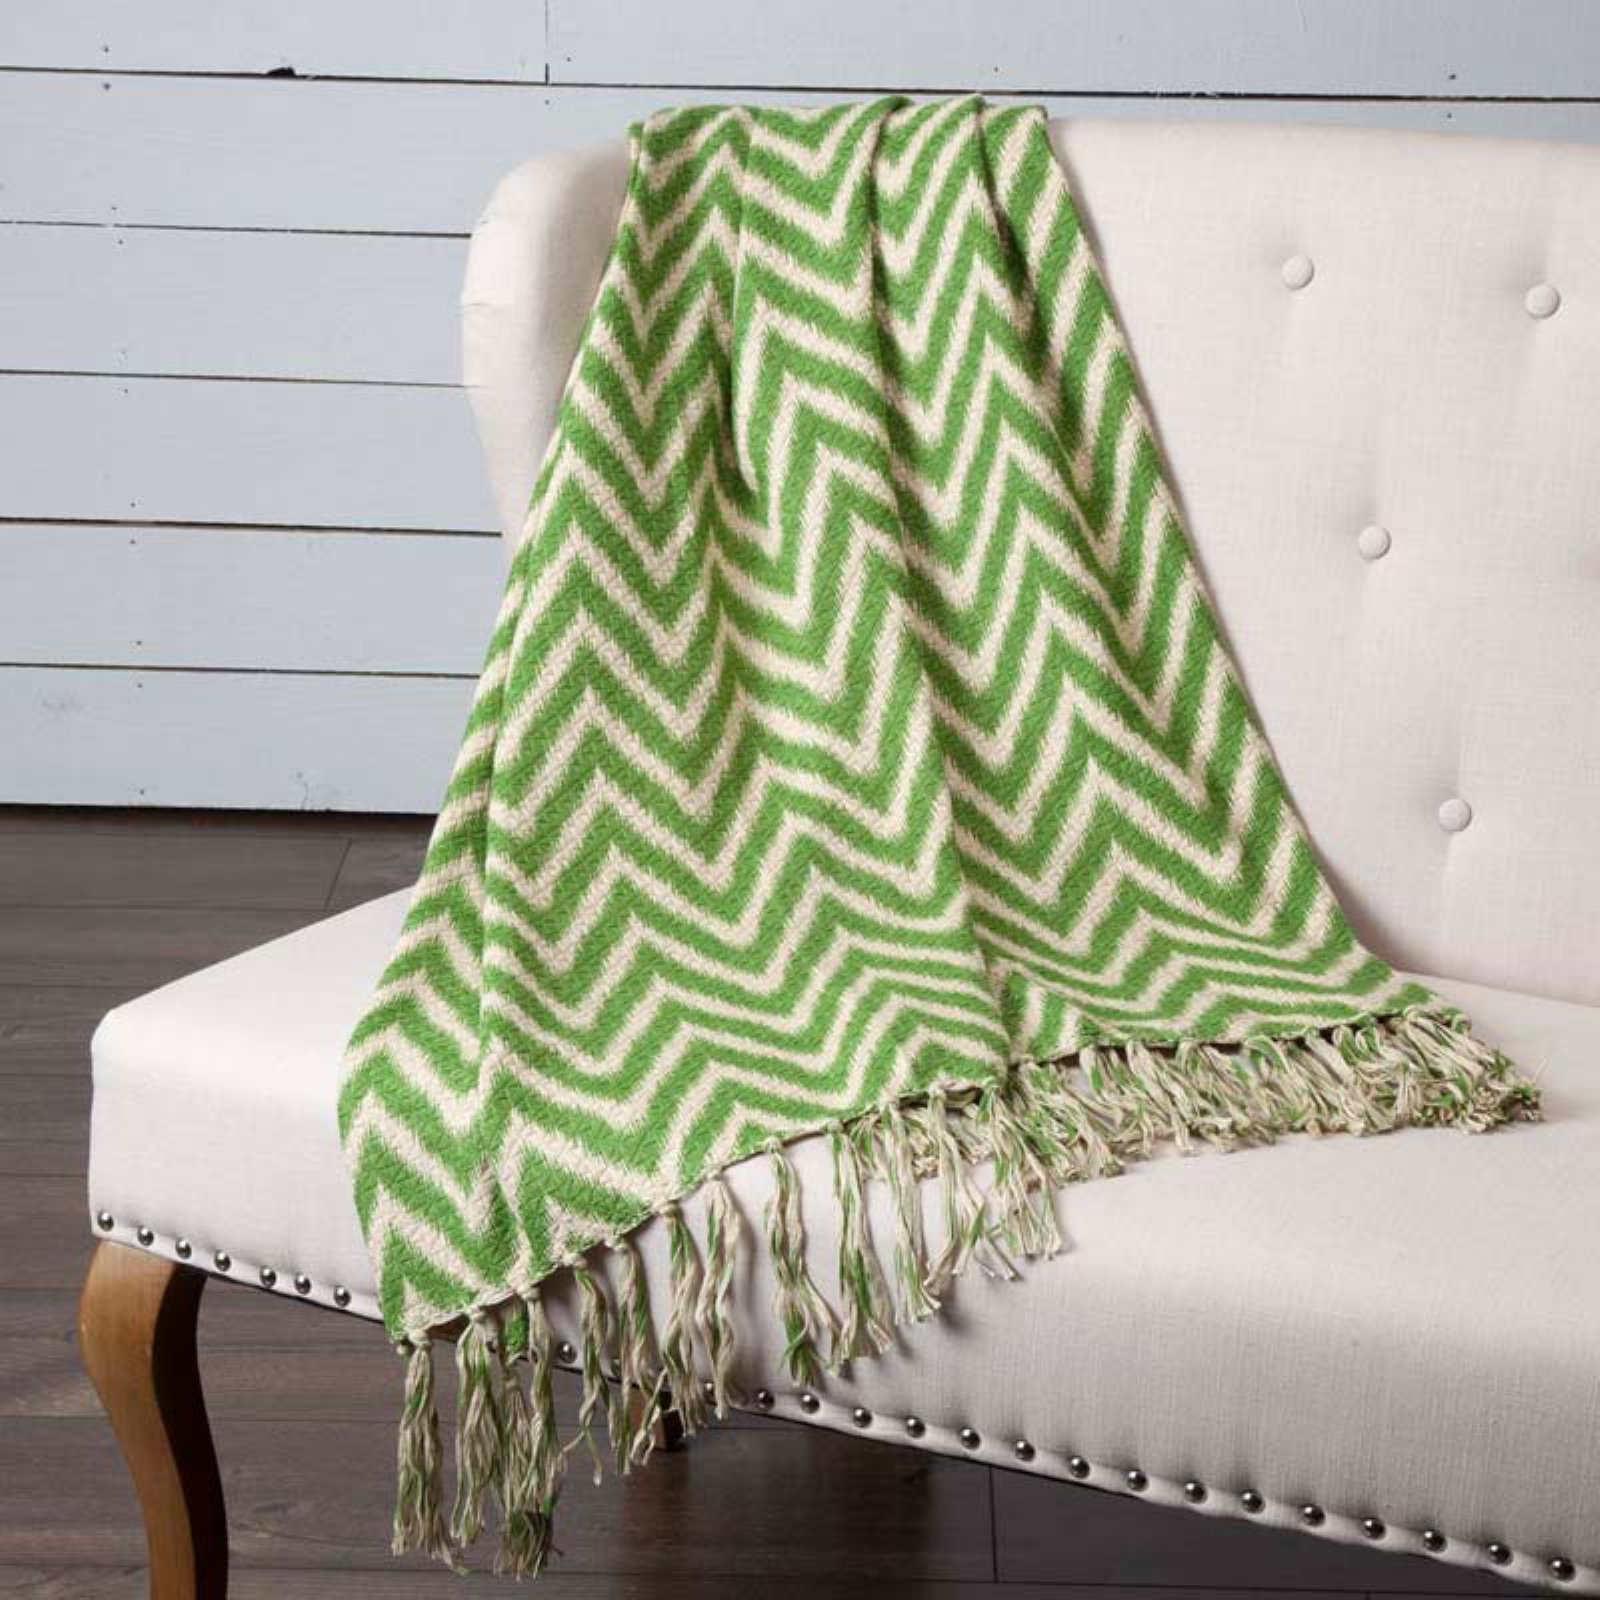 VHC Boho & Eclectic Pillows & Throws - Green Chevron Woven Throw